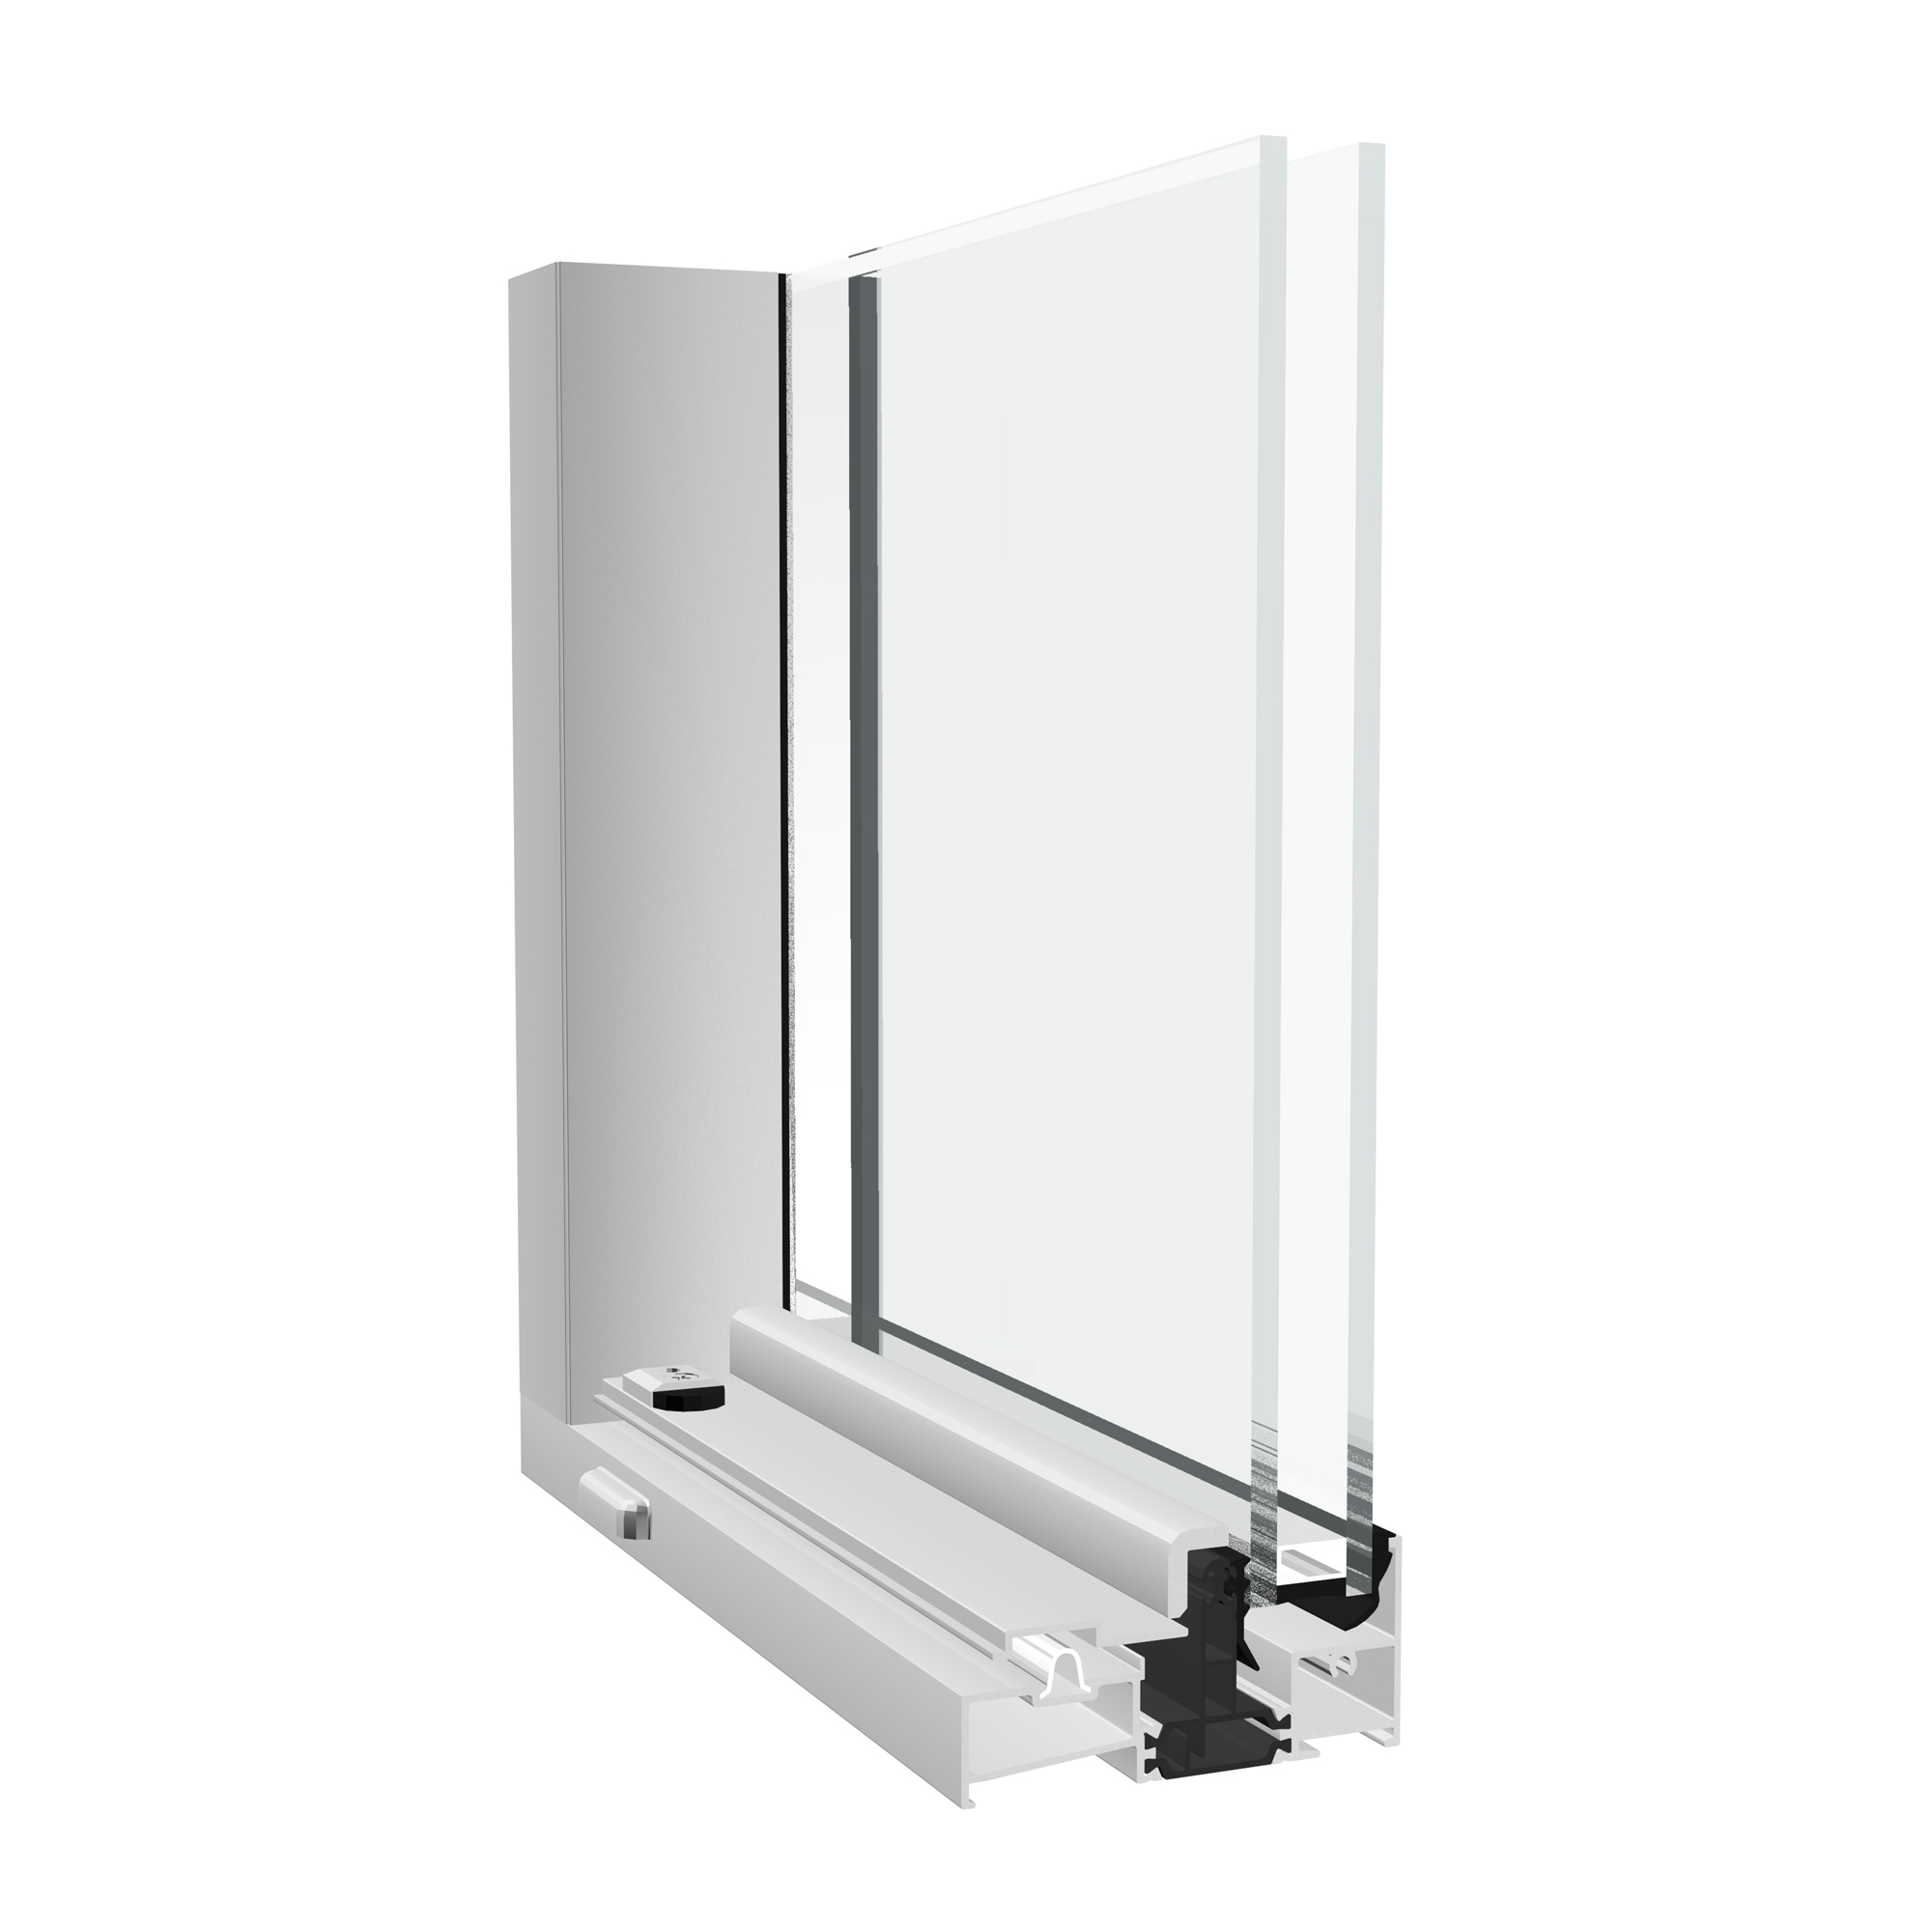 Crown aluminium patio door from Sapa